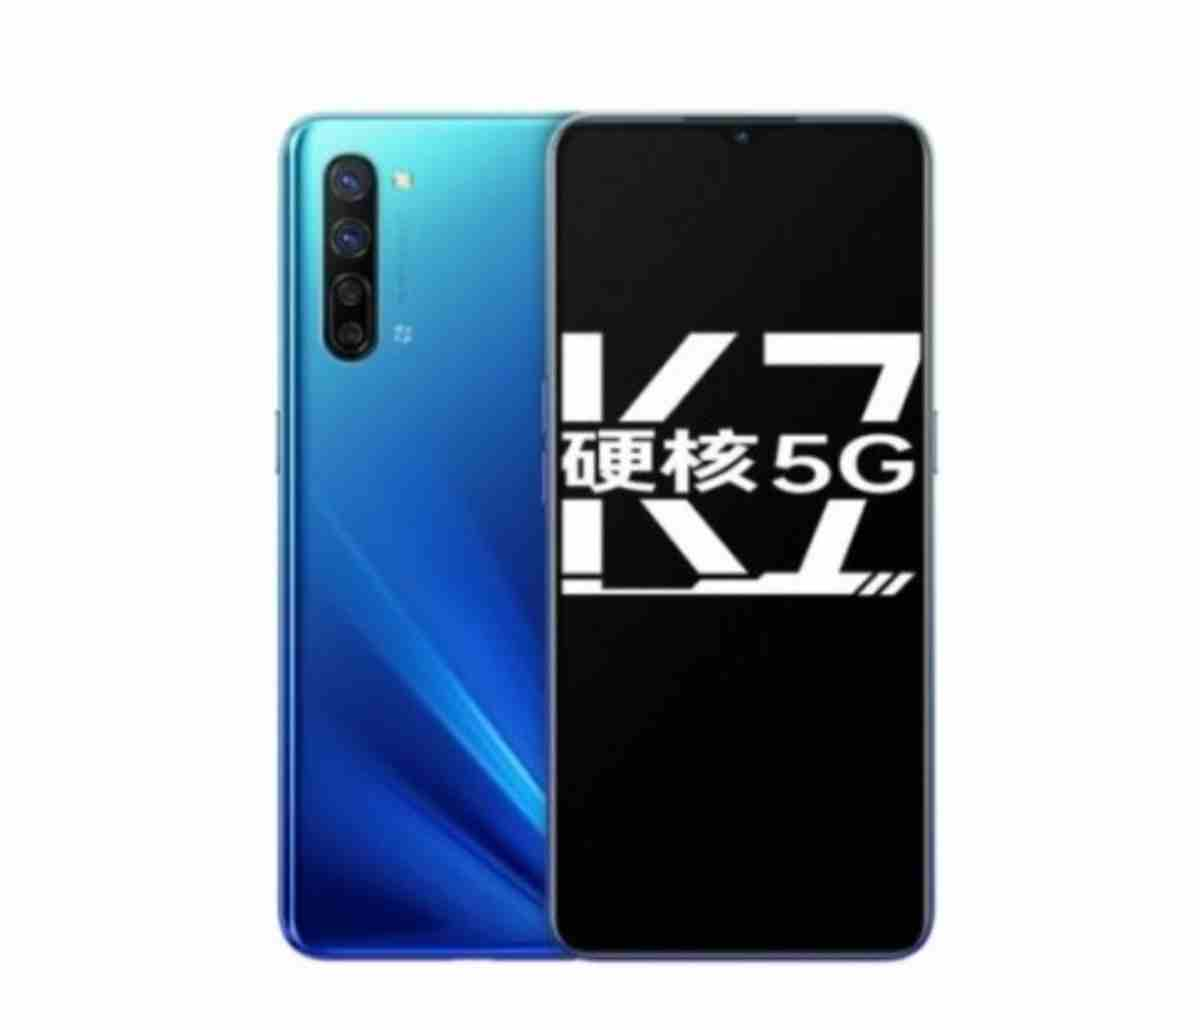 Oppo k7 5G, K7 5G Oppo, Oppo k7 5G price in Nigeria, price of Oppo K7 5G in Nigeria, how much is Oppo K7 5G, Oppo k7 5G price in China, India, Oppo K7 5G specs and price, Oppo K7 5G Full specification